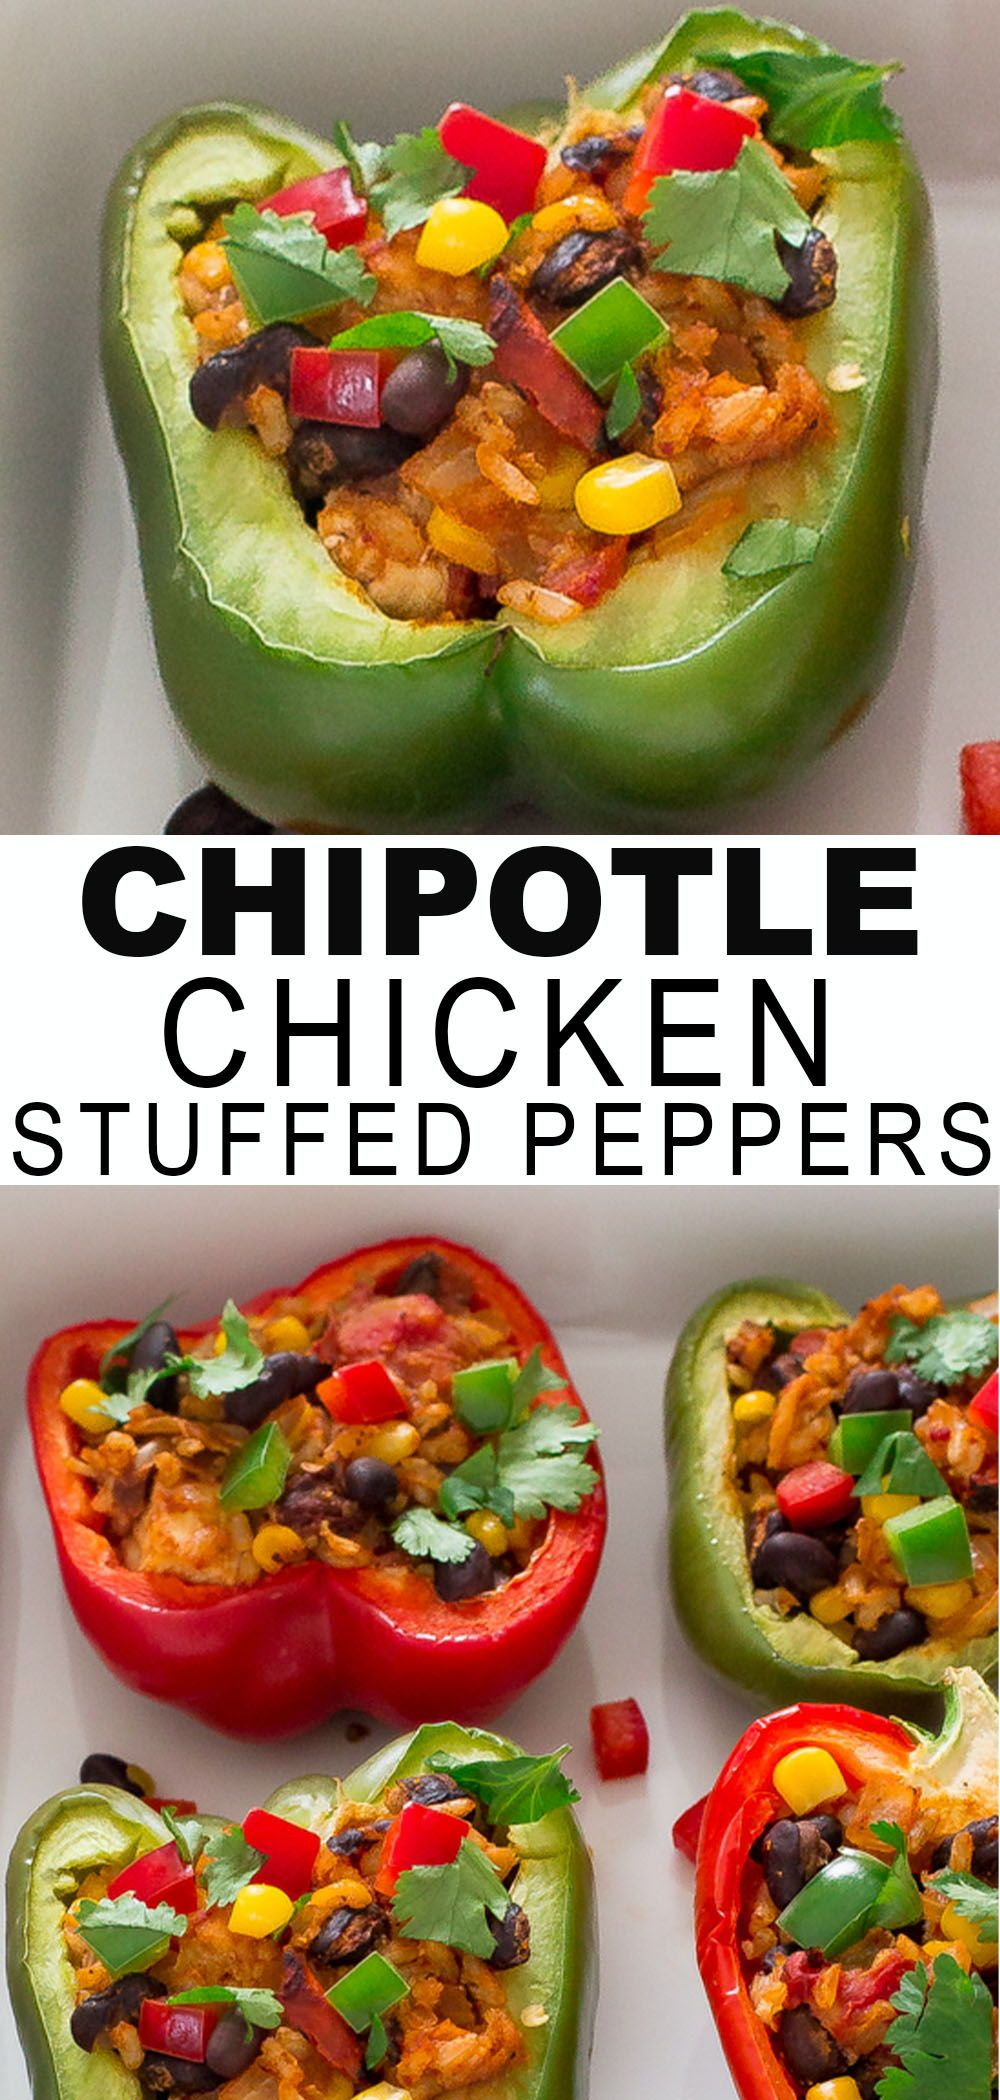 Chipotle Chicken Stuffed Peppers Chef Savvy Recipe Stuffed Peppers Chicken Stuffed Peppers Easy Healthy Recipes